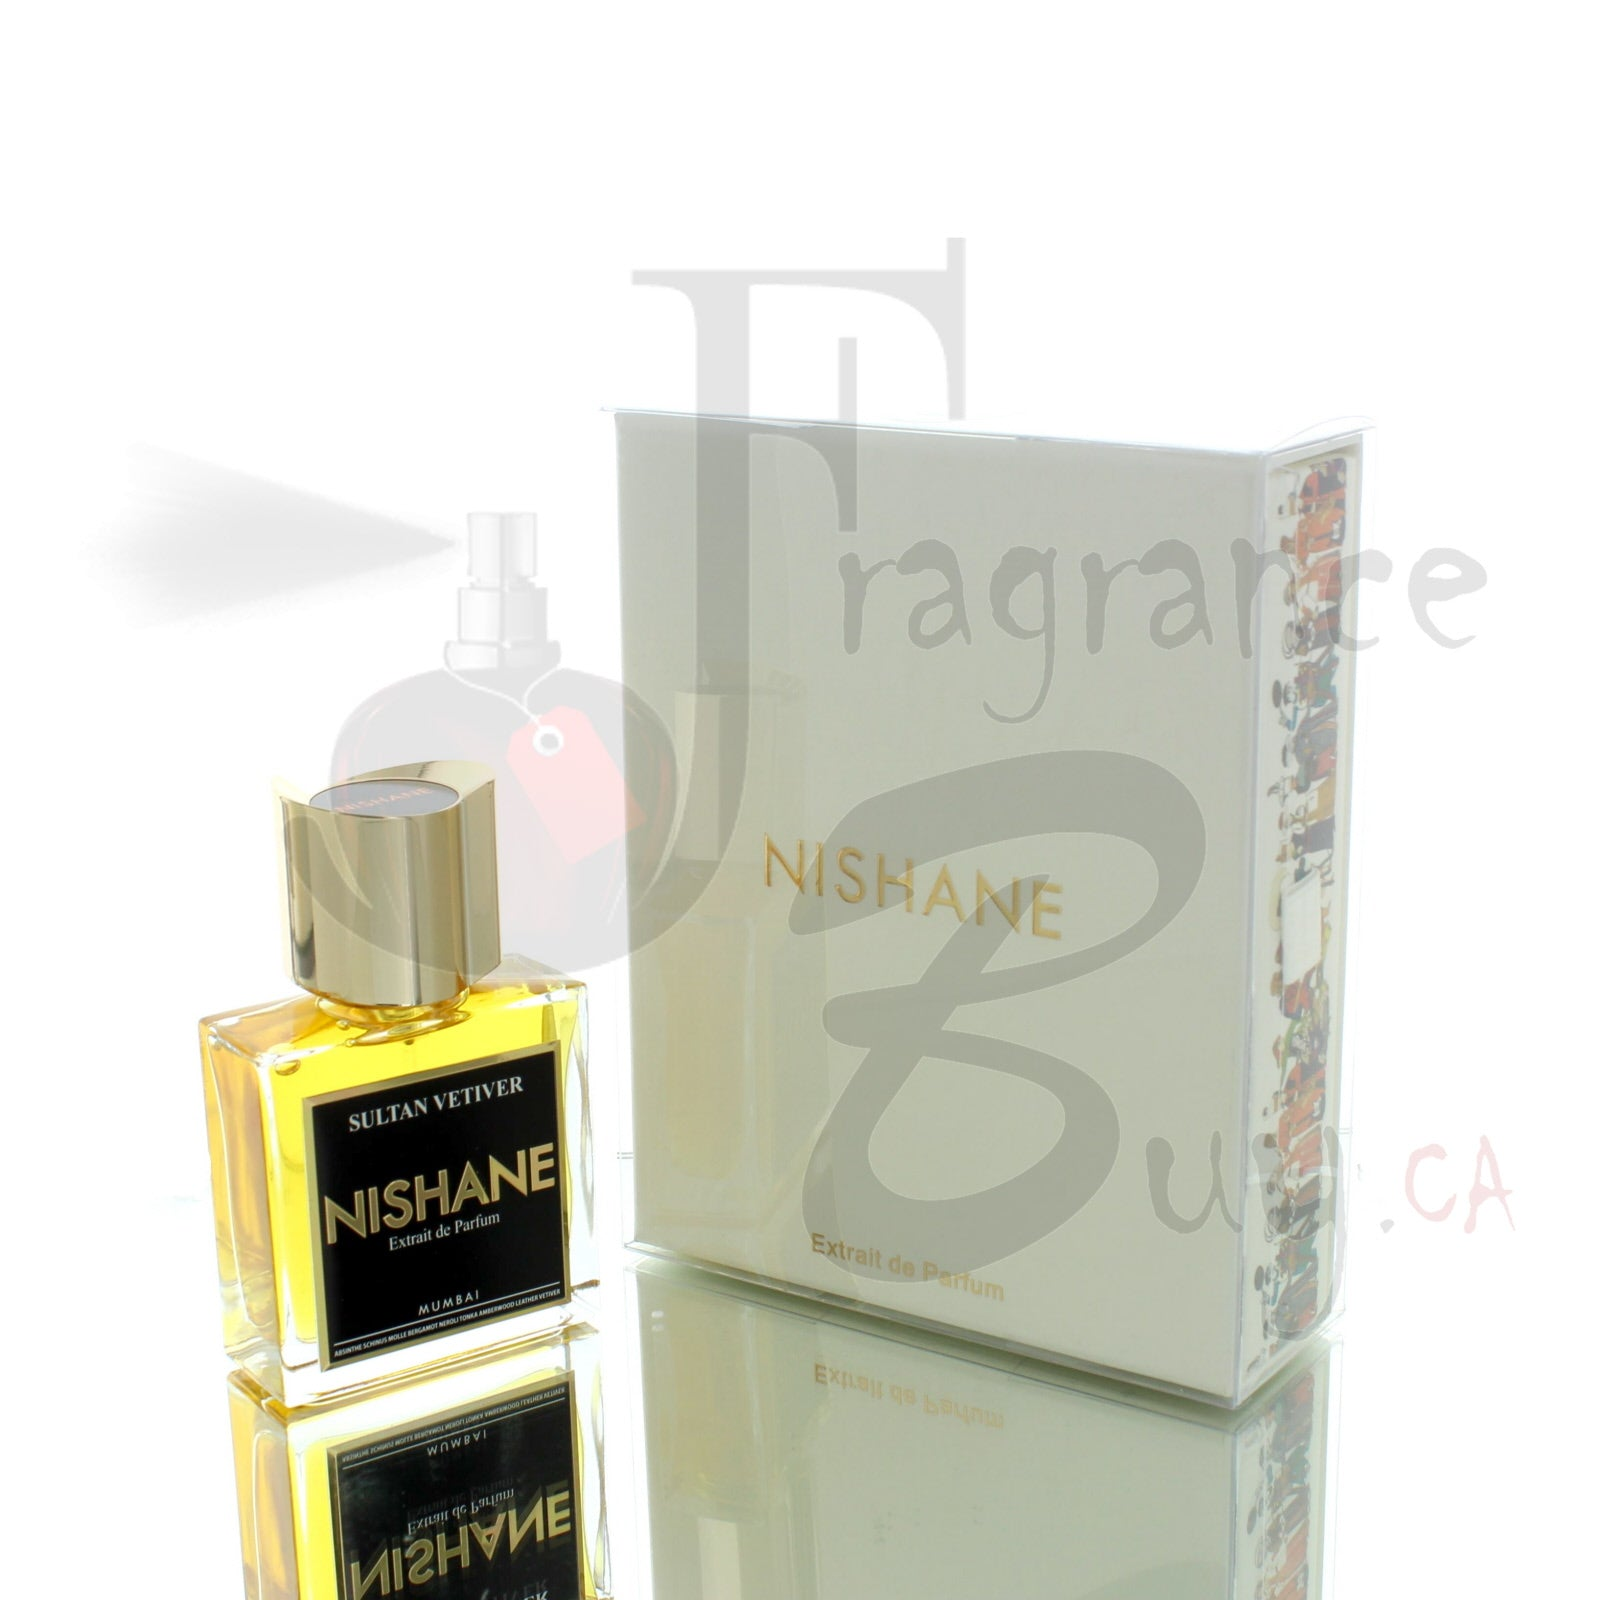 Nishane Sultan Vetiver For Man/Woman